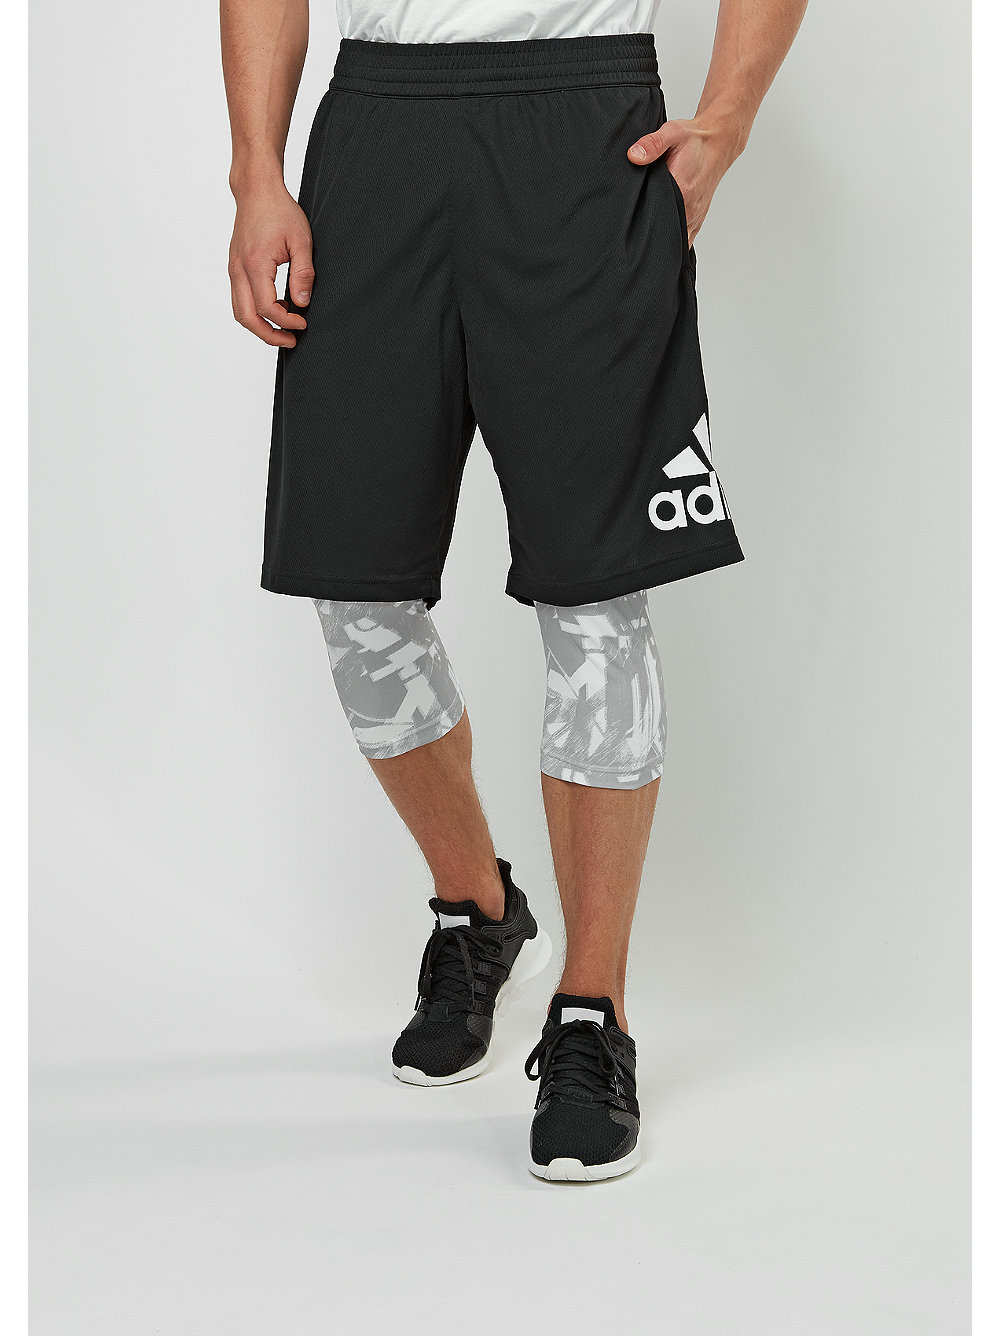 adidas Sport-Short CL GFX black